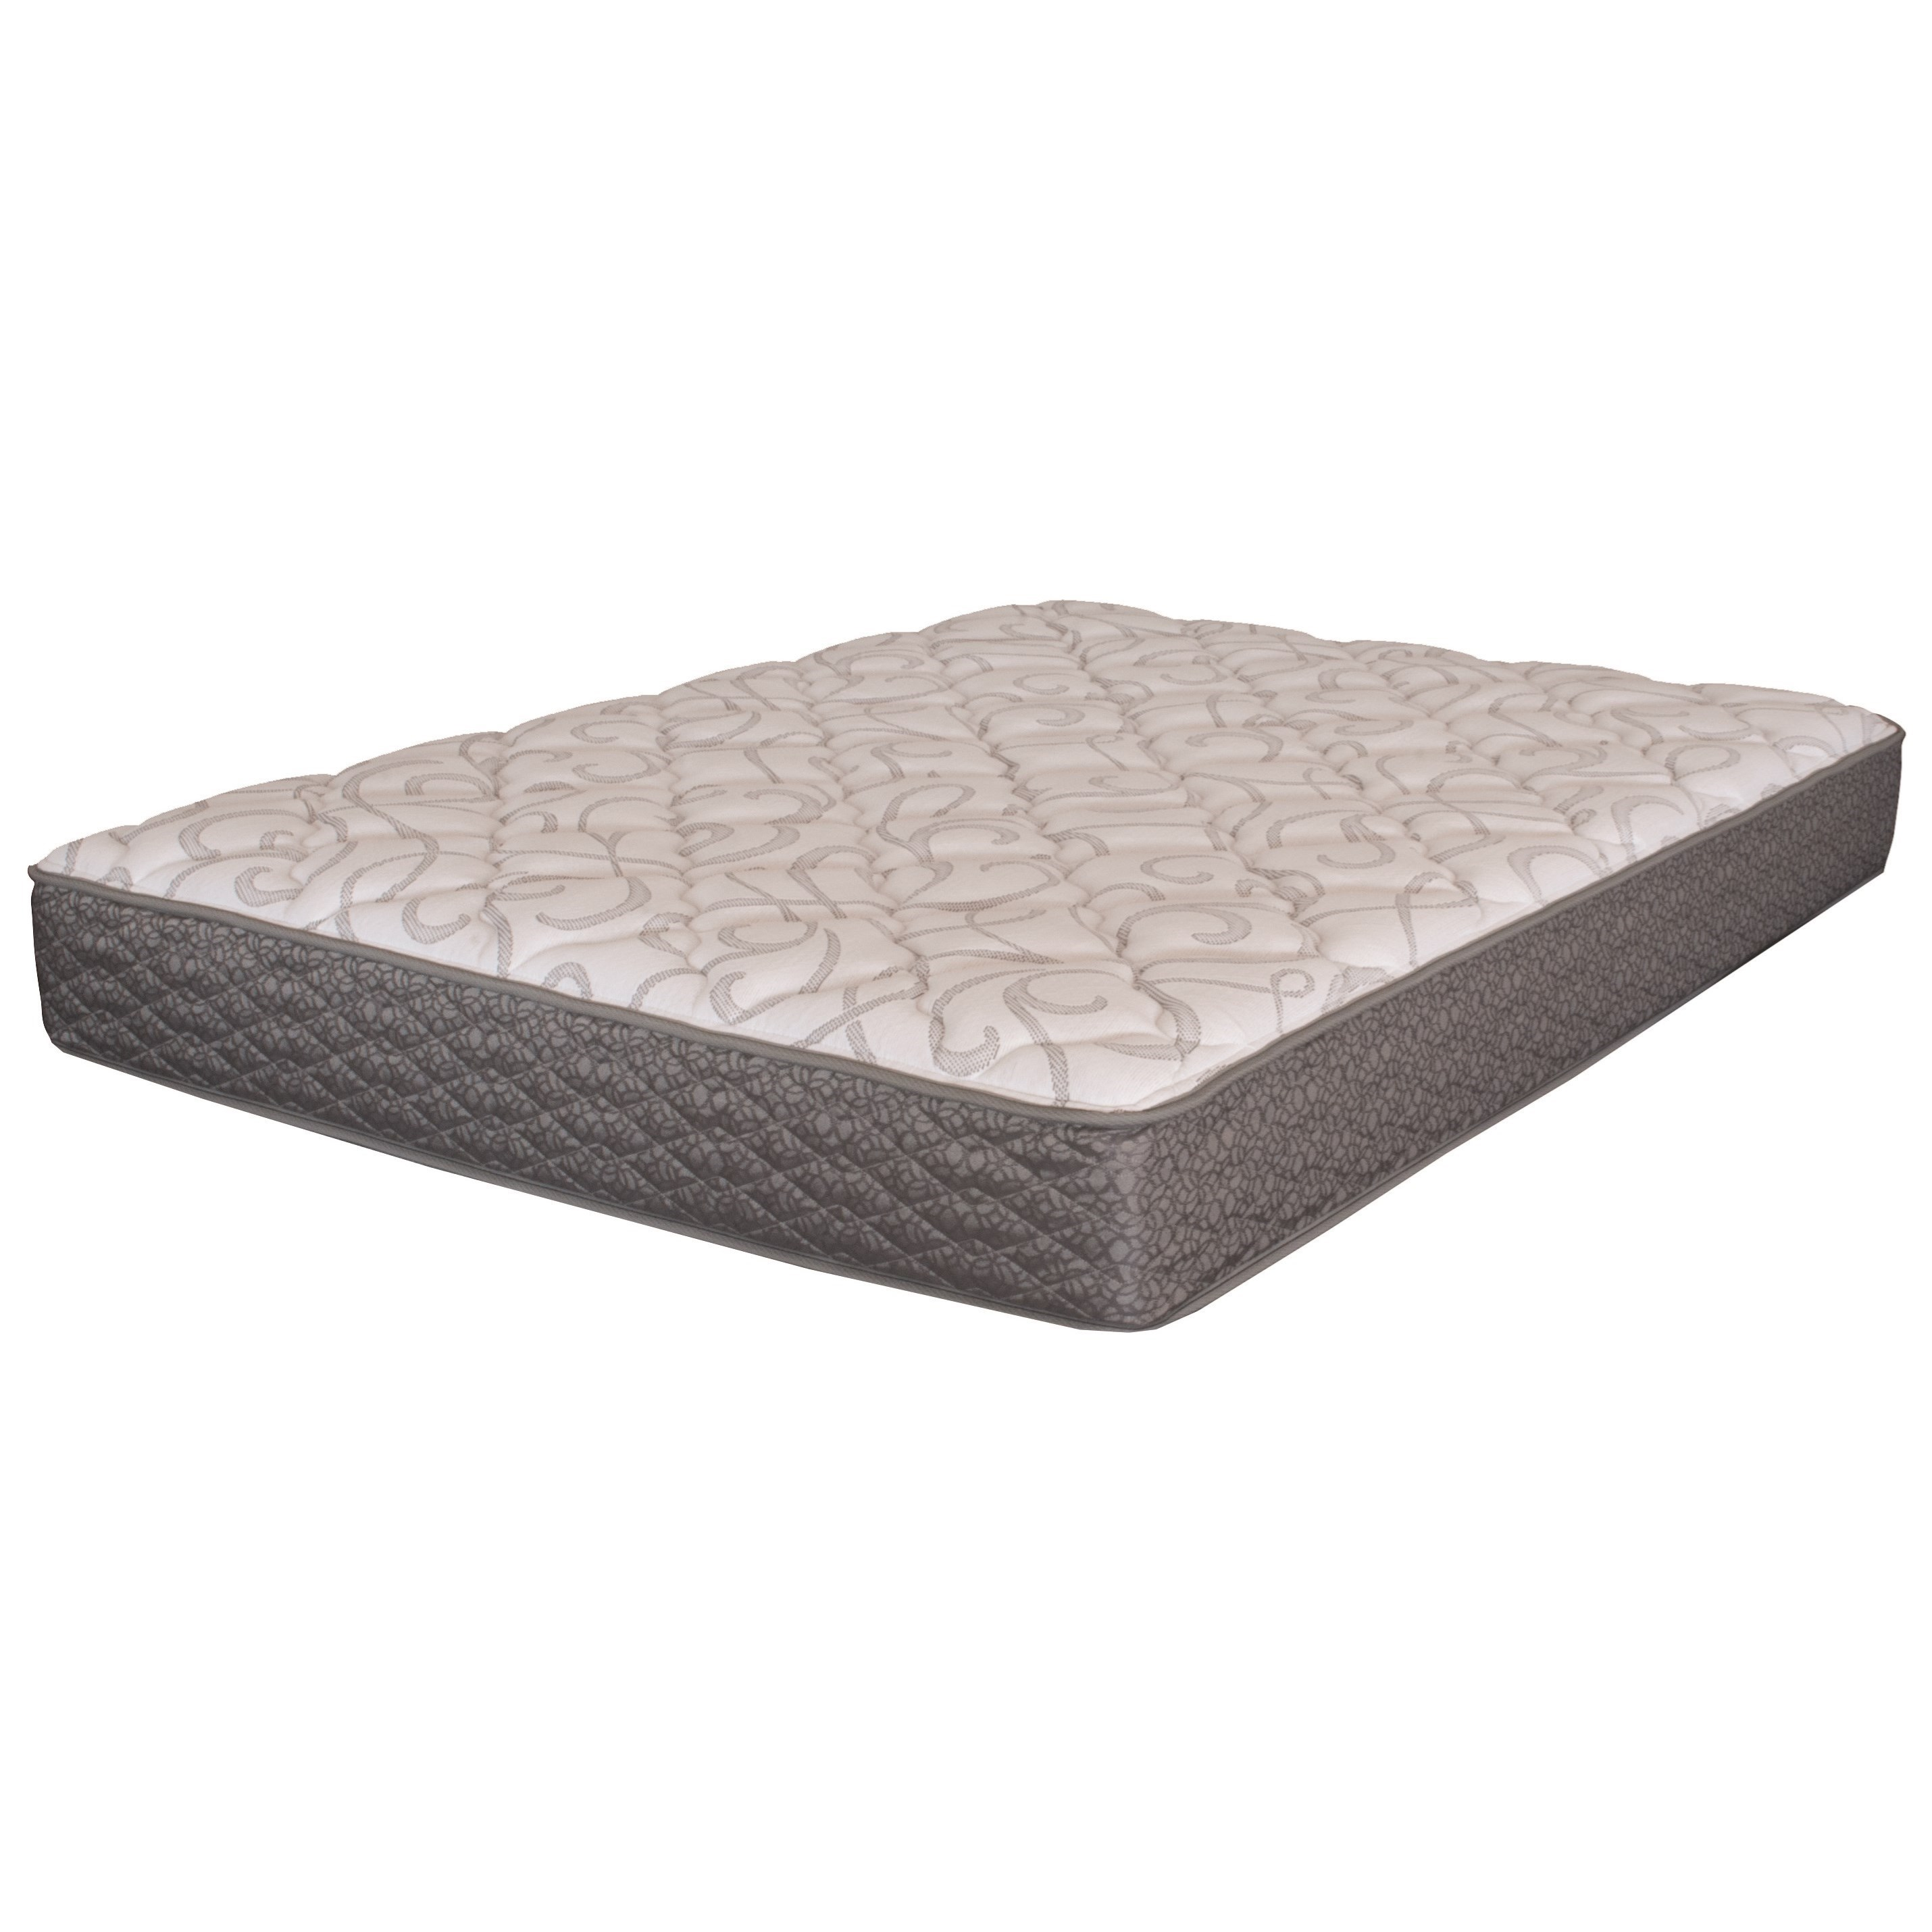 serta twin mattress. Plain Mattress Serta IAmerica Historical Plush Twin Innerspring Mattress With I